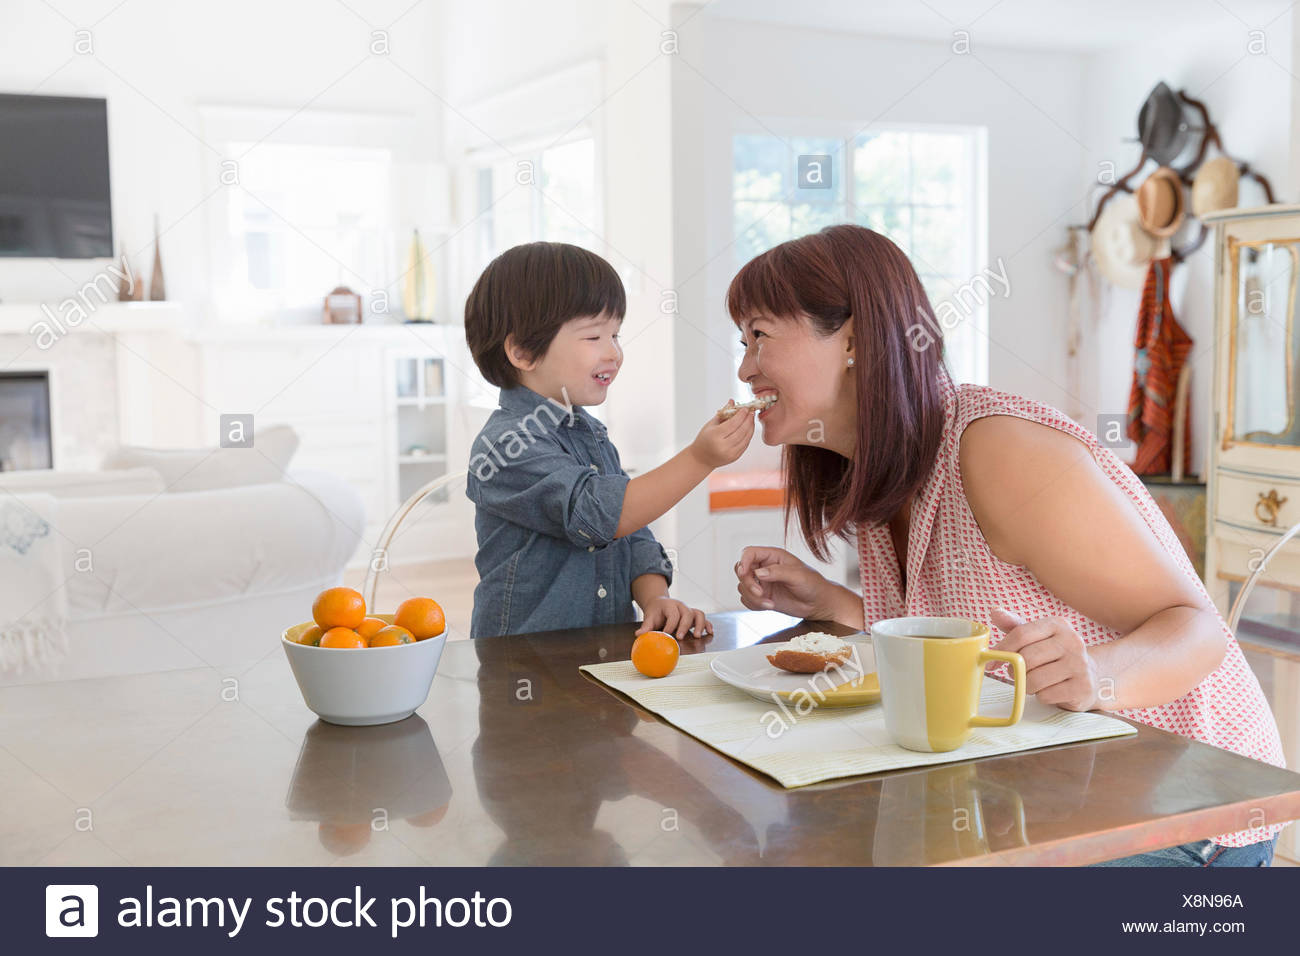 Playful son feeding mother at dining table - Stock Image